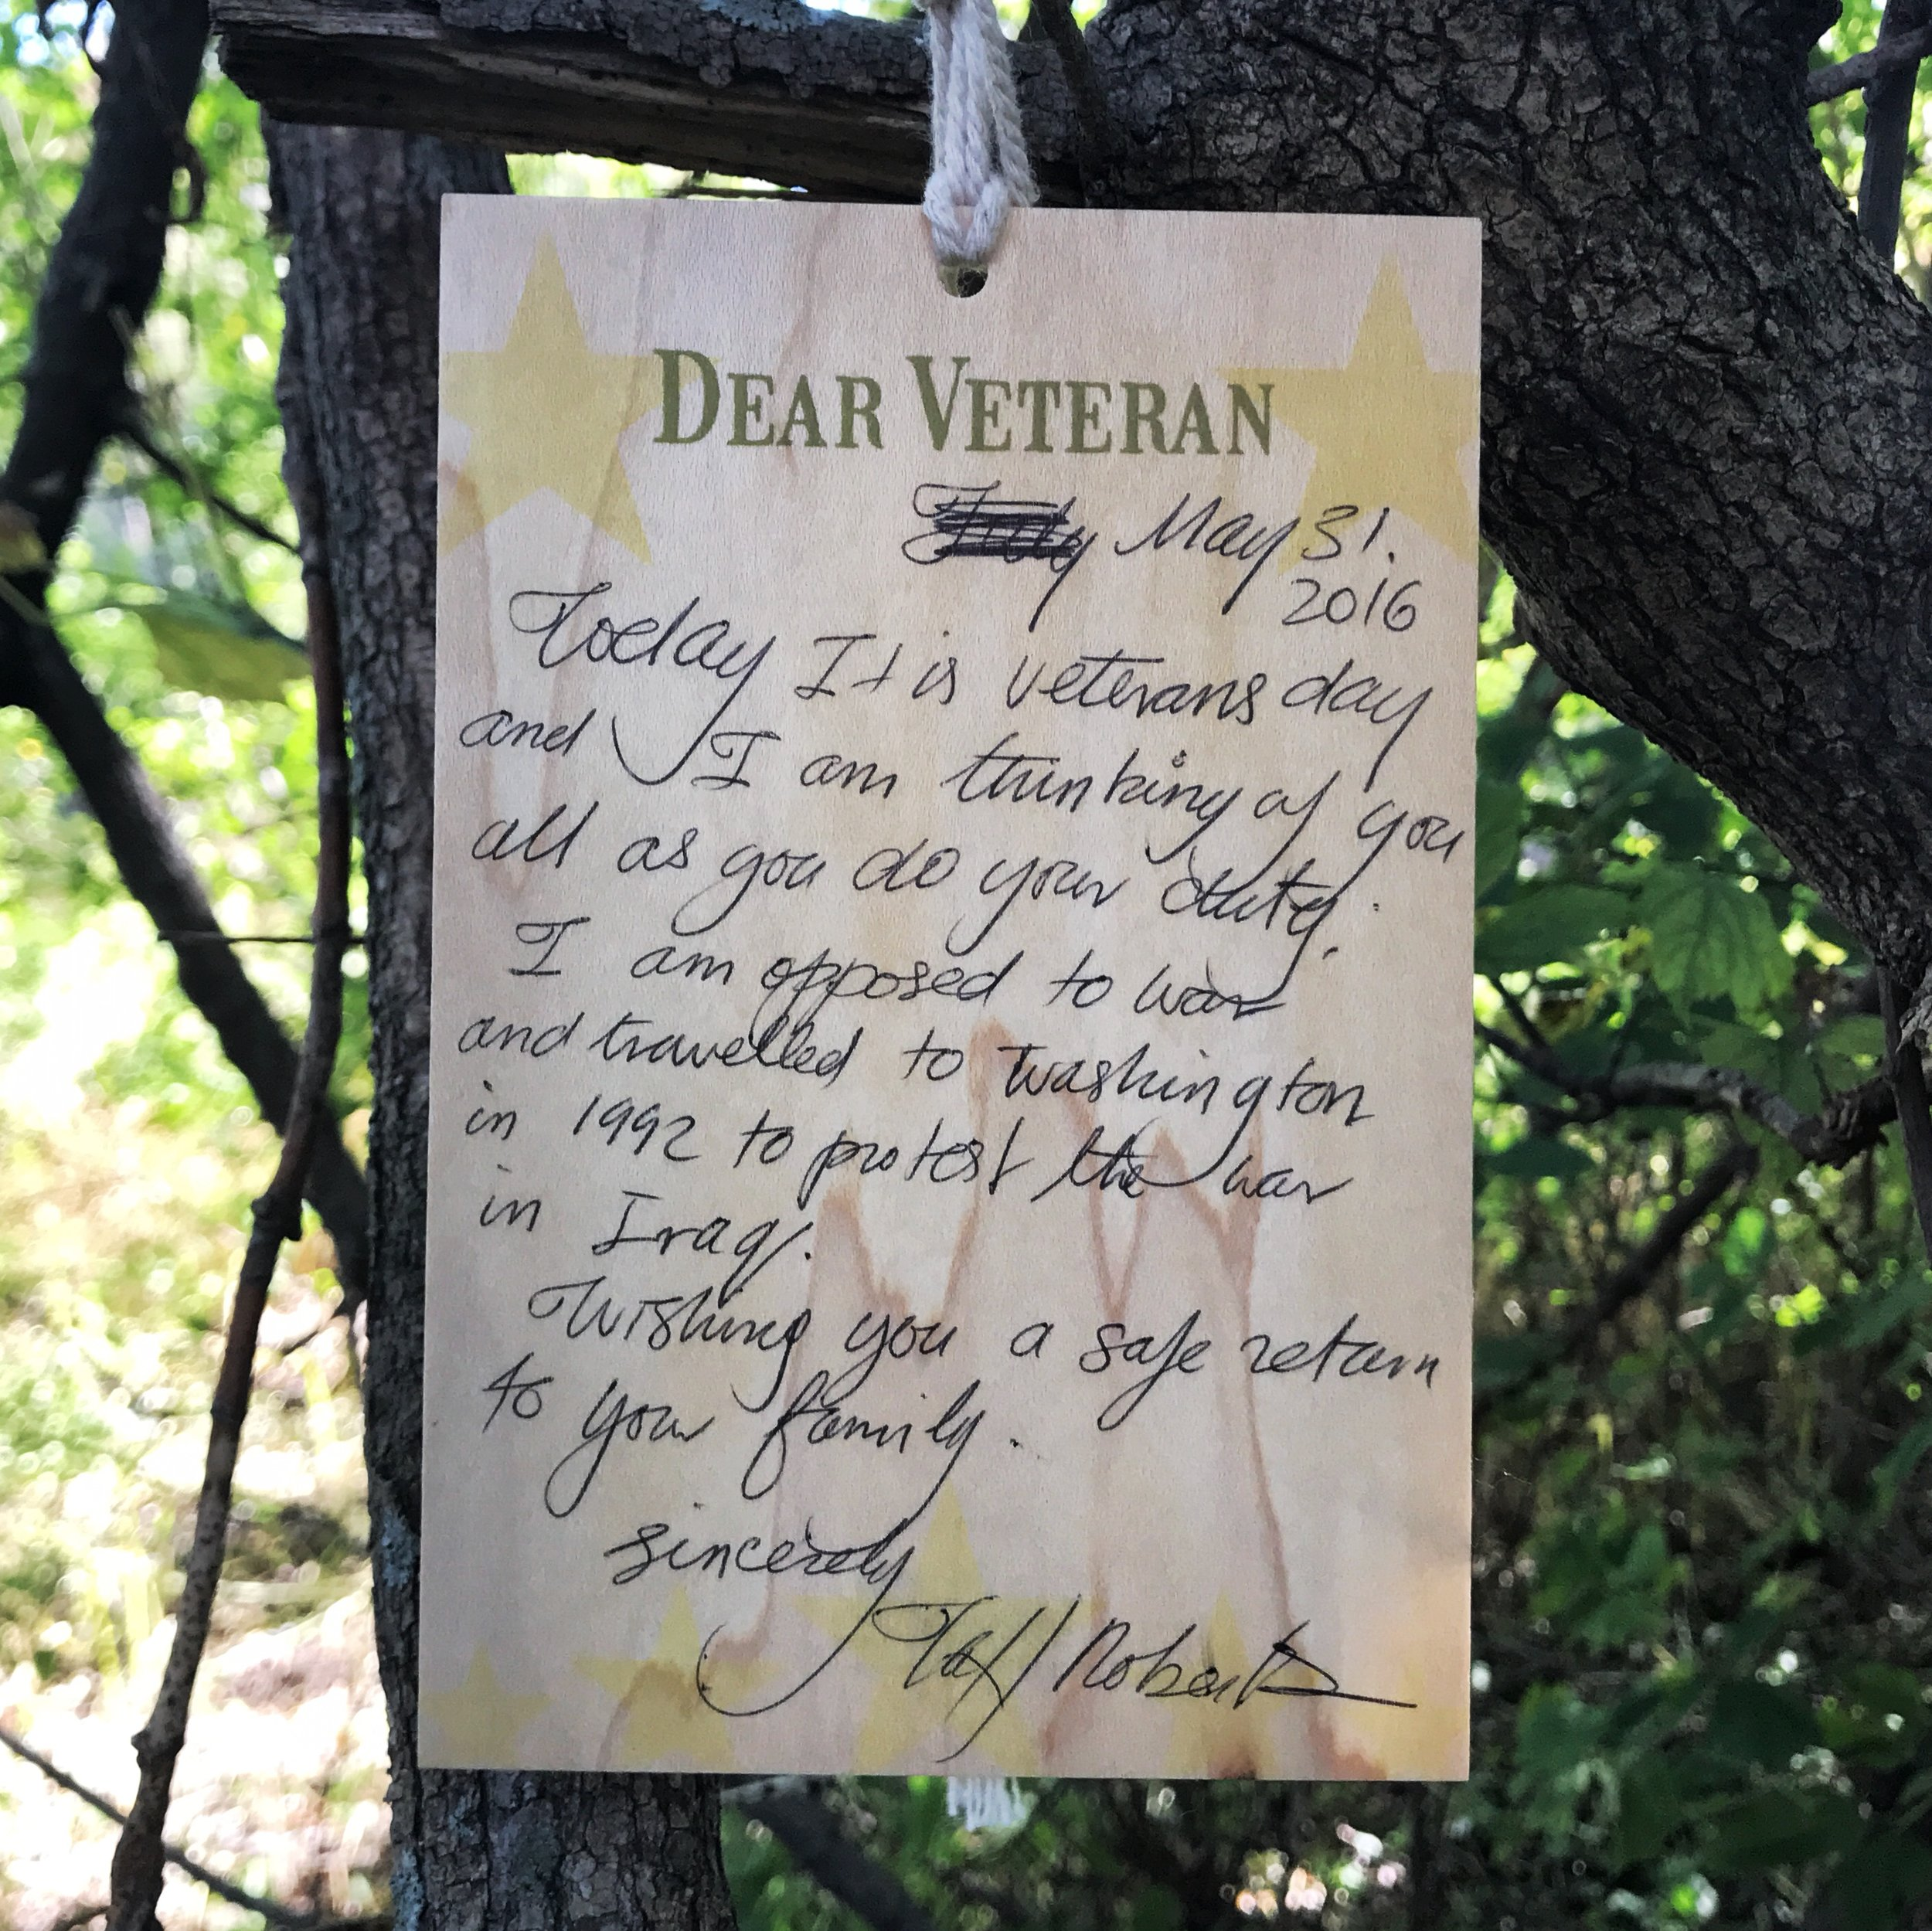 DearVeteran_OCT11_2017.JPG